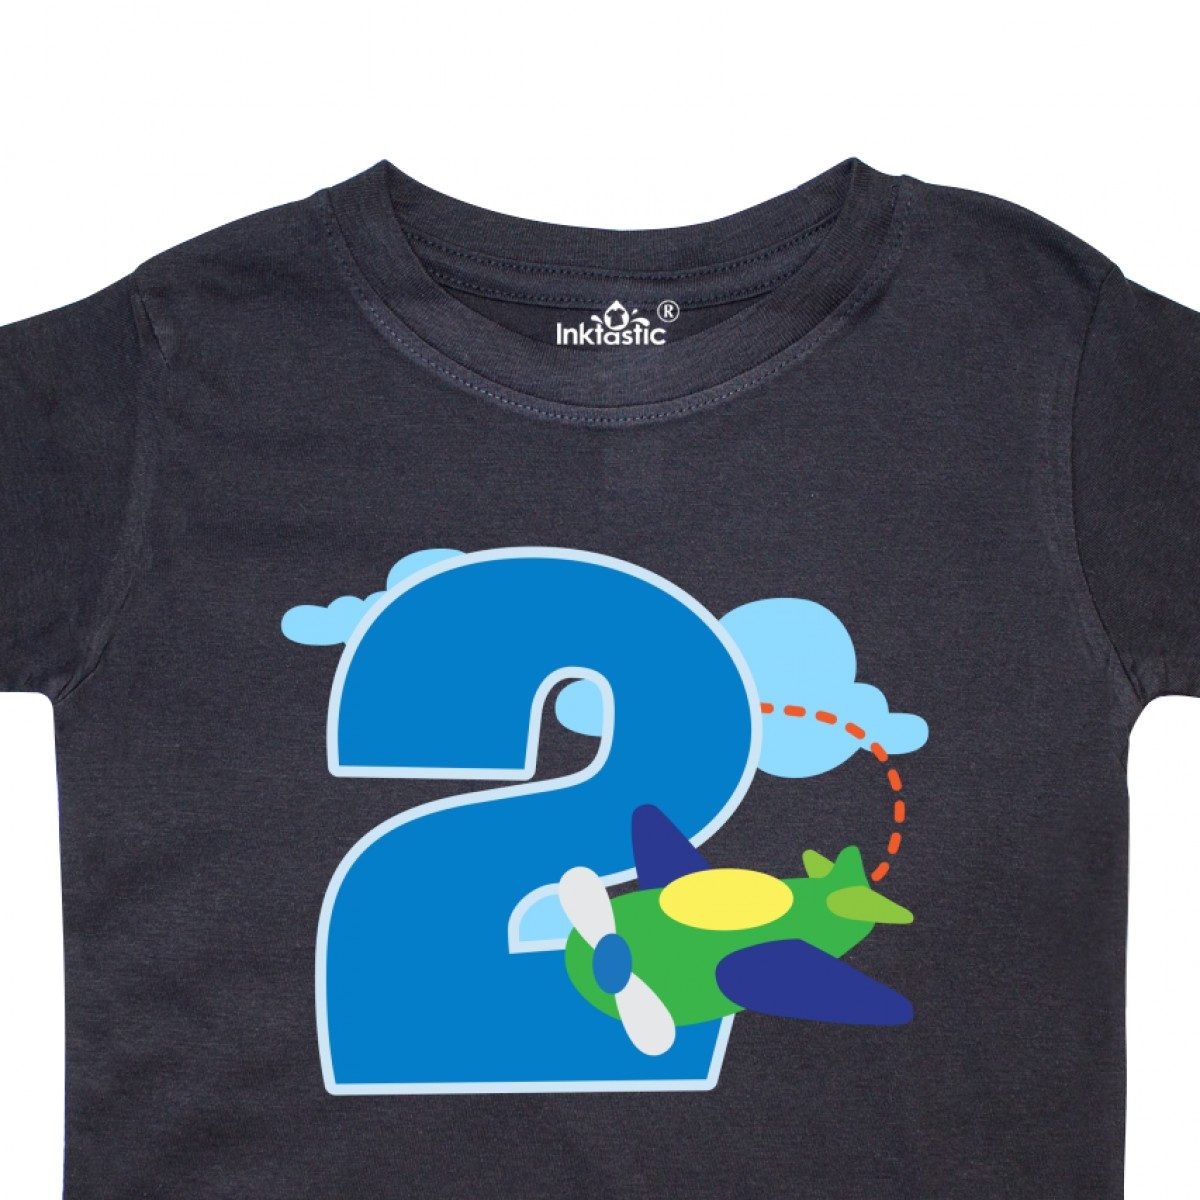 b49b62186 ... Airplane Boys 2 Year Old Toddler T-shirt Happy Two Im Kid 5t/6t Black.  About this product. Picture 1 of 4; Picture 2 of 4; Picture 3 of 4; Picture  4 of ...